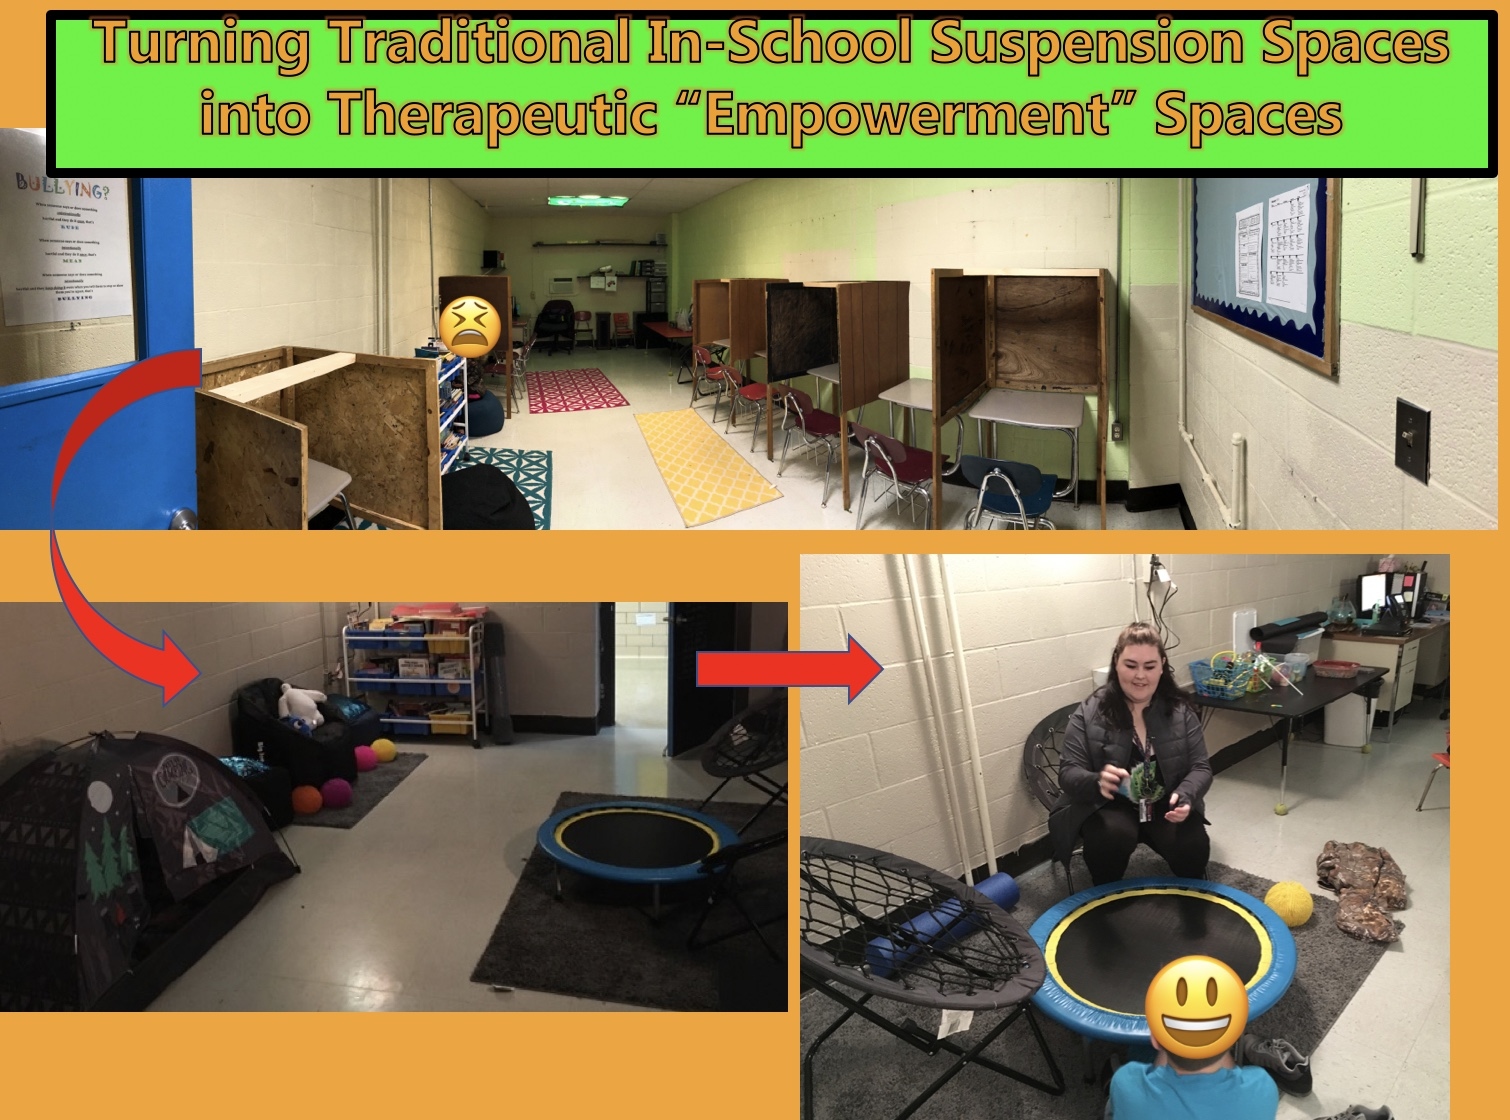 Mindset-Shift - Transforming Traditional In-School Suspension Spaces into Restorative/Empowerment Spaces requires a complete school culture mindset shift. The physical changes that you see in the pictures is the easy part. Our team takes great pride in equipping your team with the tools and knowledge to begin this journey. Let's face it, you are already operating in initiative fatigue. It takes an experienced maestro to bring each part of your orchestra to life.[Rate: $750/day, plus travel & expenses]